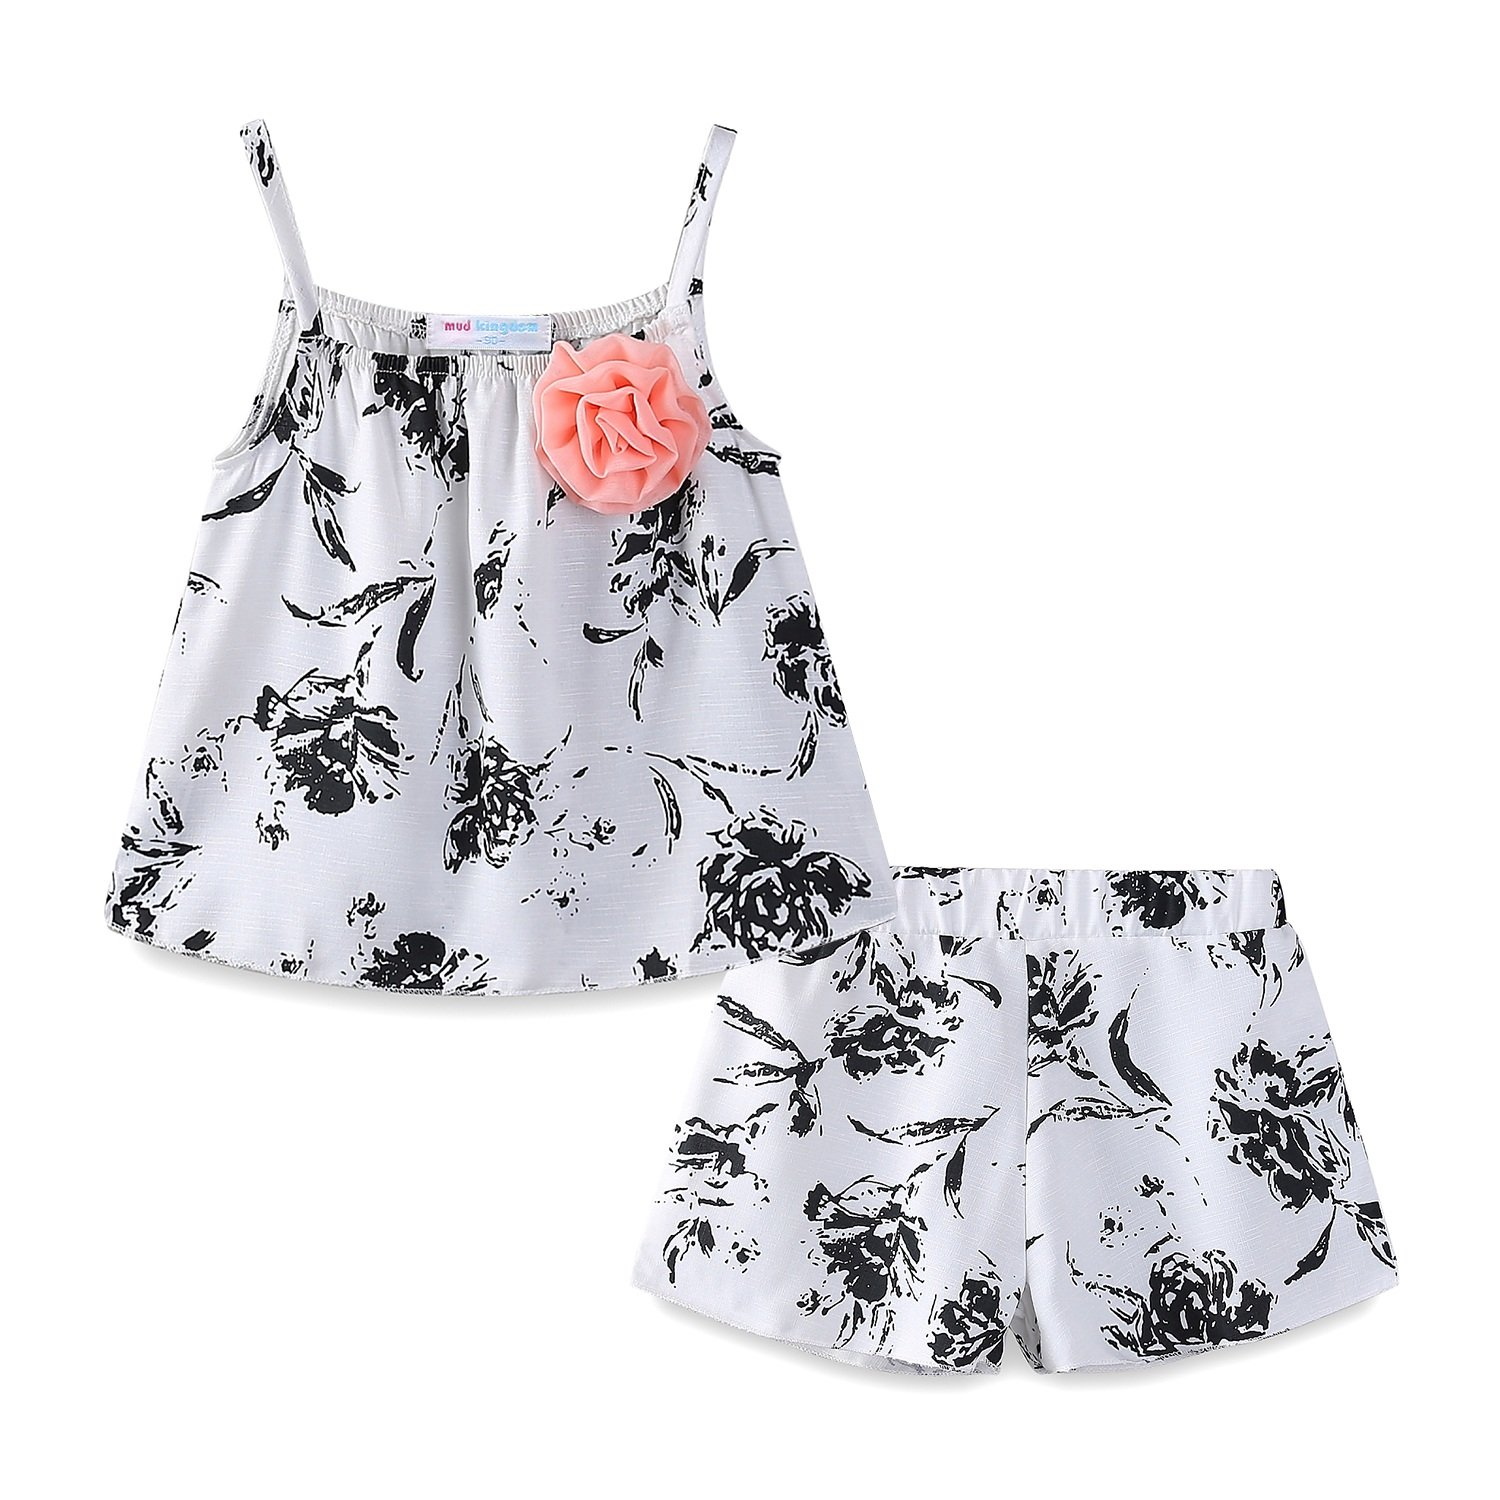 Mud Kingdom Little Girls Outfits Summer Holiday Floral Halter Tops and Short Clothes Sets 3T